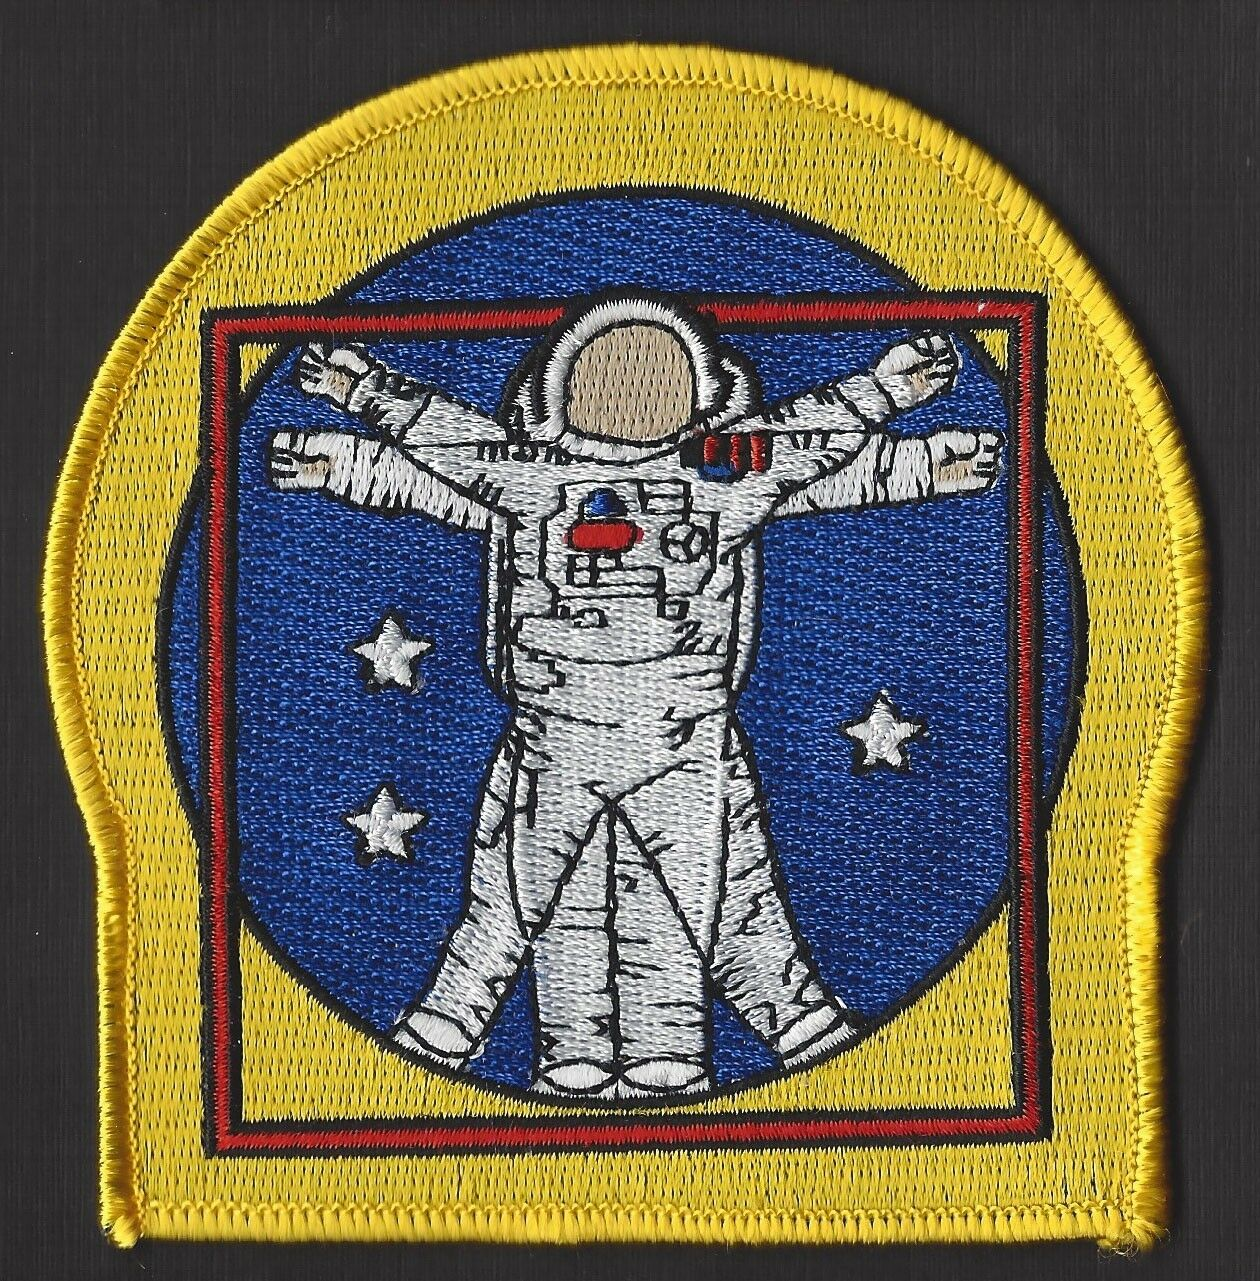 nasa patches for sale - HD1260×1281